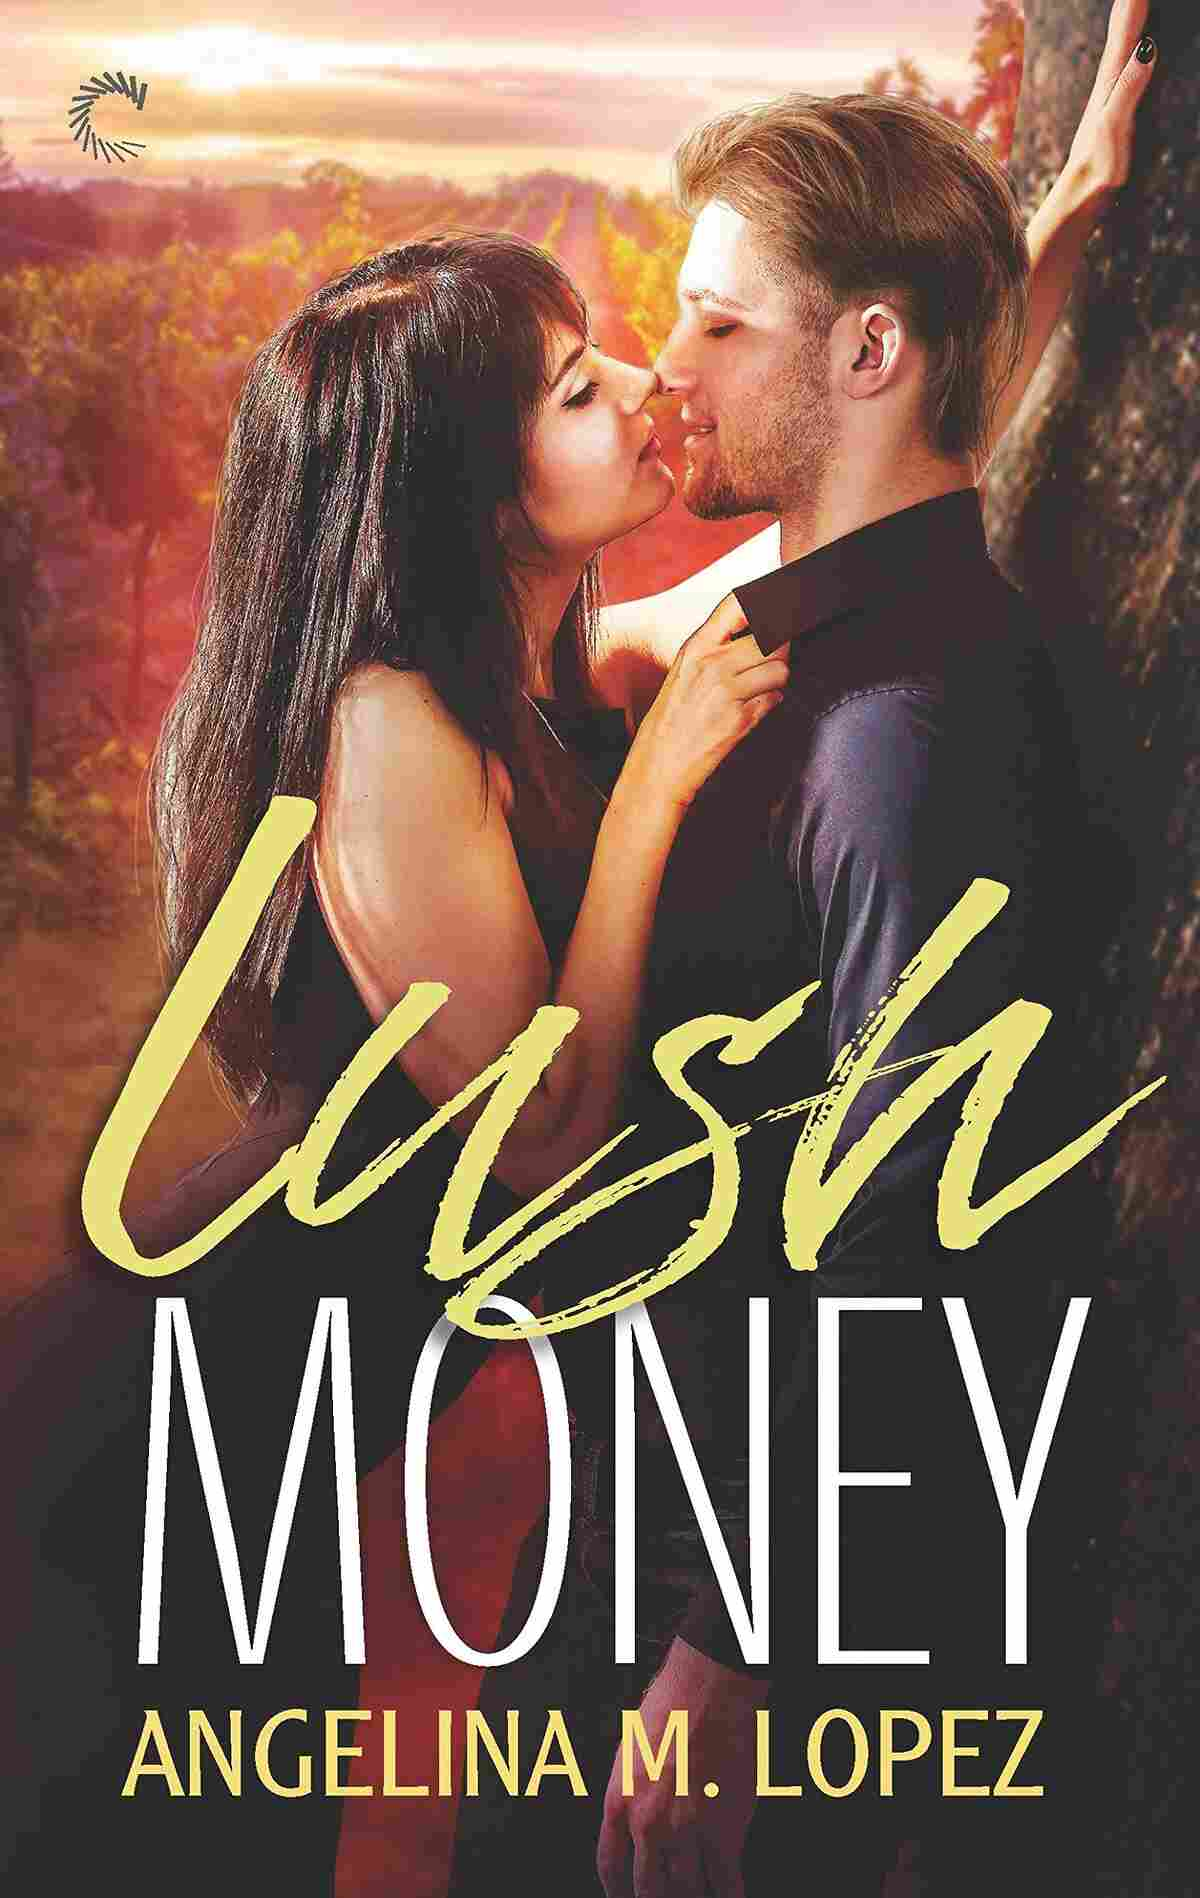 Lush Money, by Angelina M. Lopez